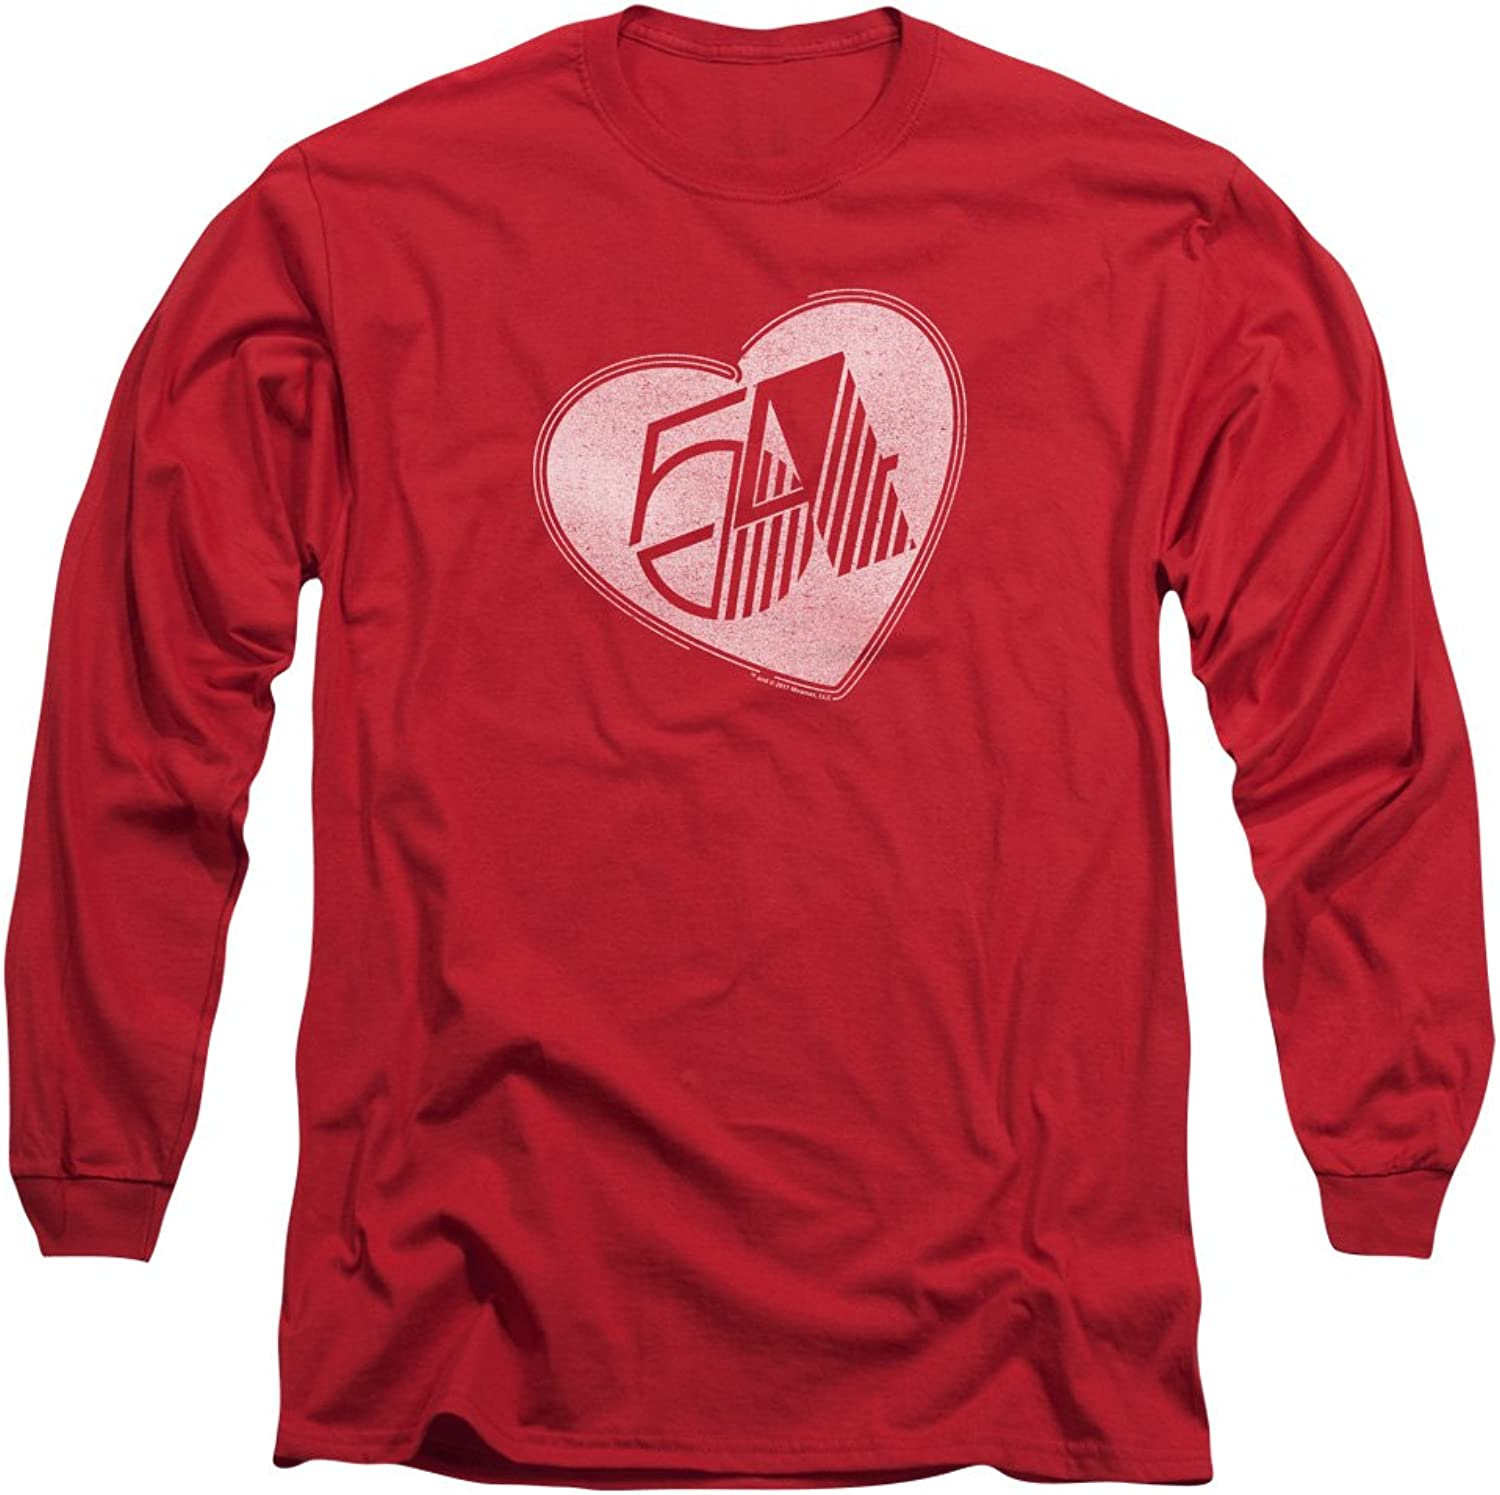 812ceaae3f94 Studio 54 - Mens I Heart Long Sleeve Sleeve Sleeve T-Shirt 4c0d35 ...